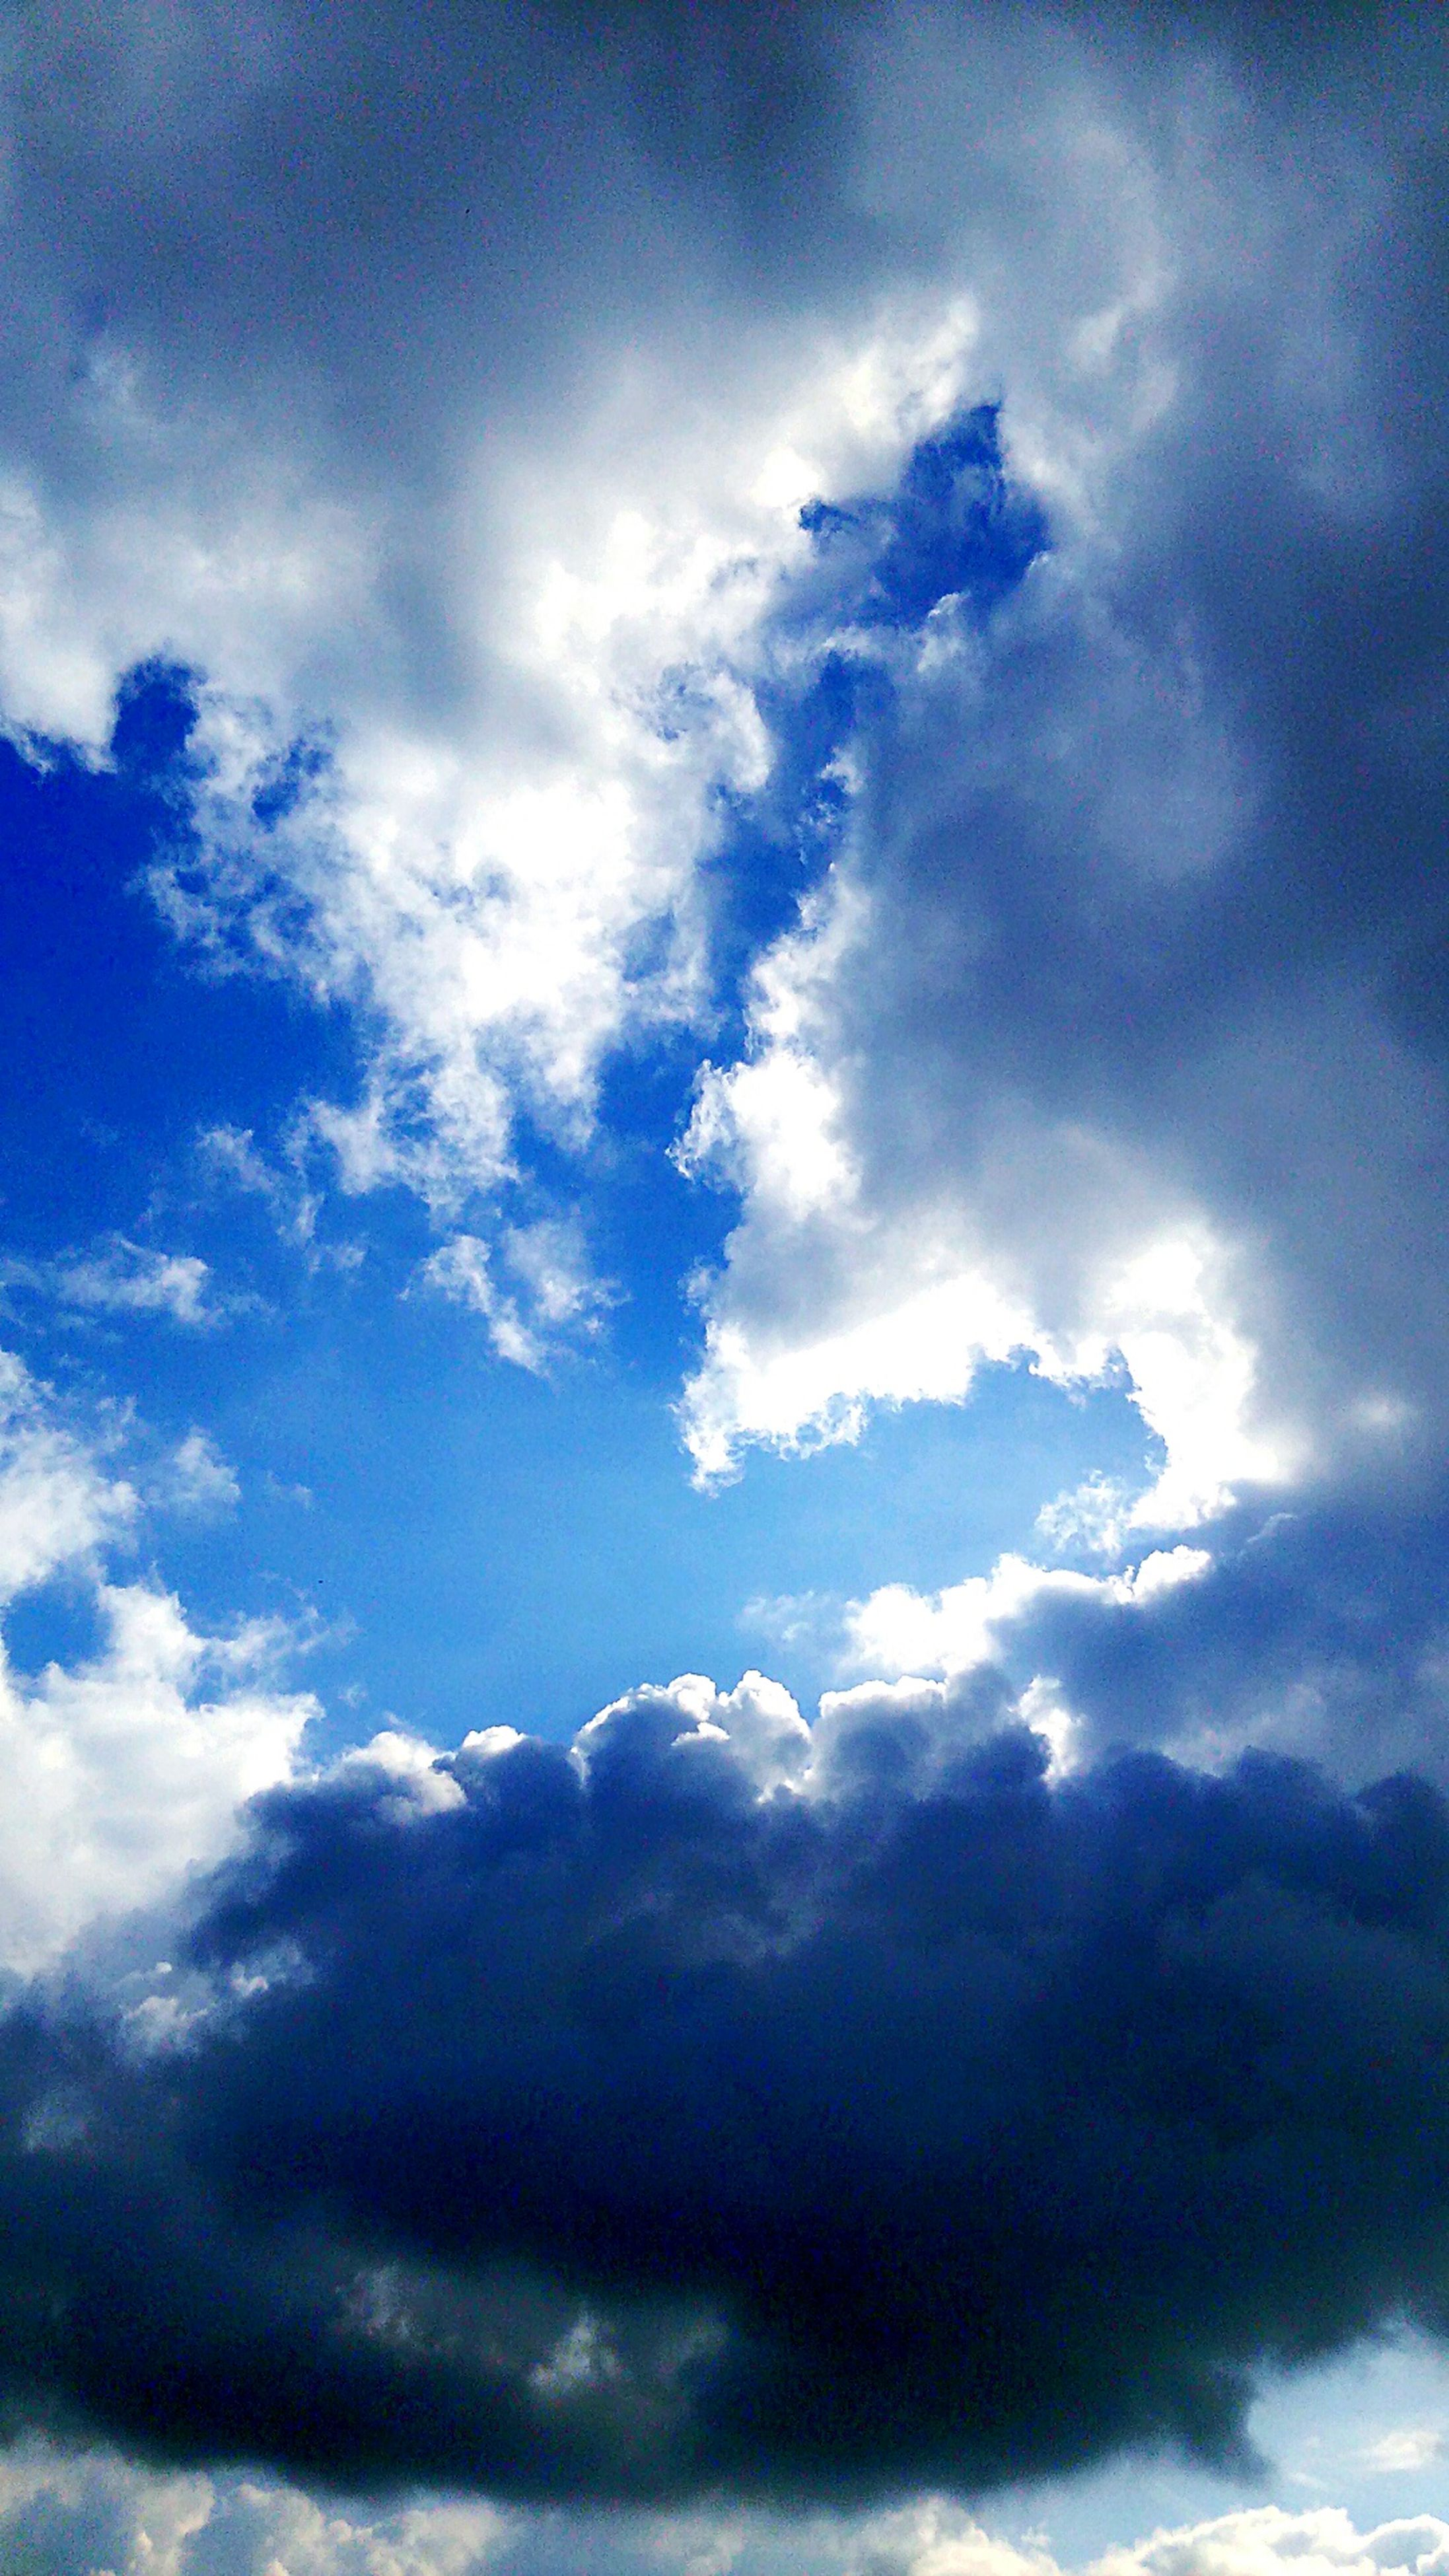 sky, cloud - sky, low angle view, cloudy, sky only, cloudscape, beauty in nature, tranquility, scenics, blue, nature, tranquil scene, cloud, weather, backgrounds, idyllic, fluffy, full frame, white color, majestic